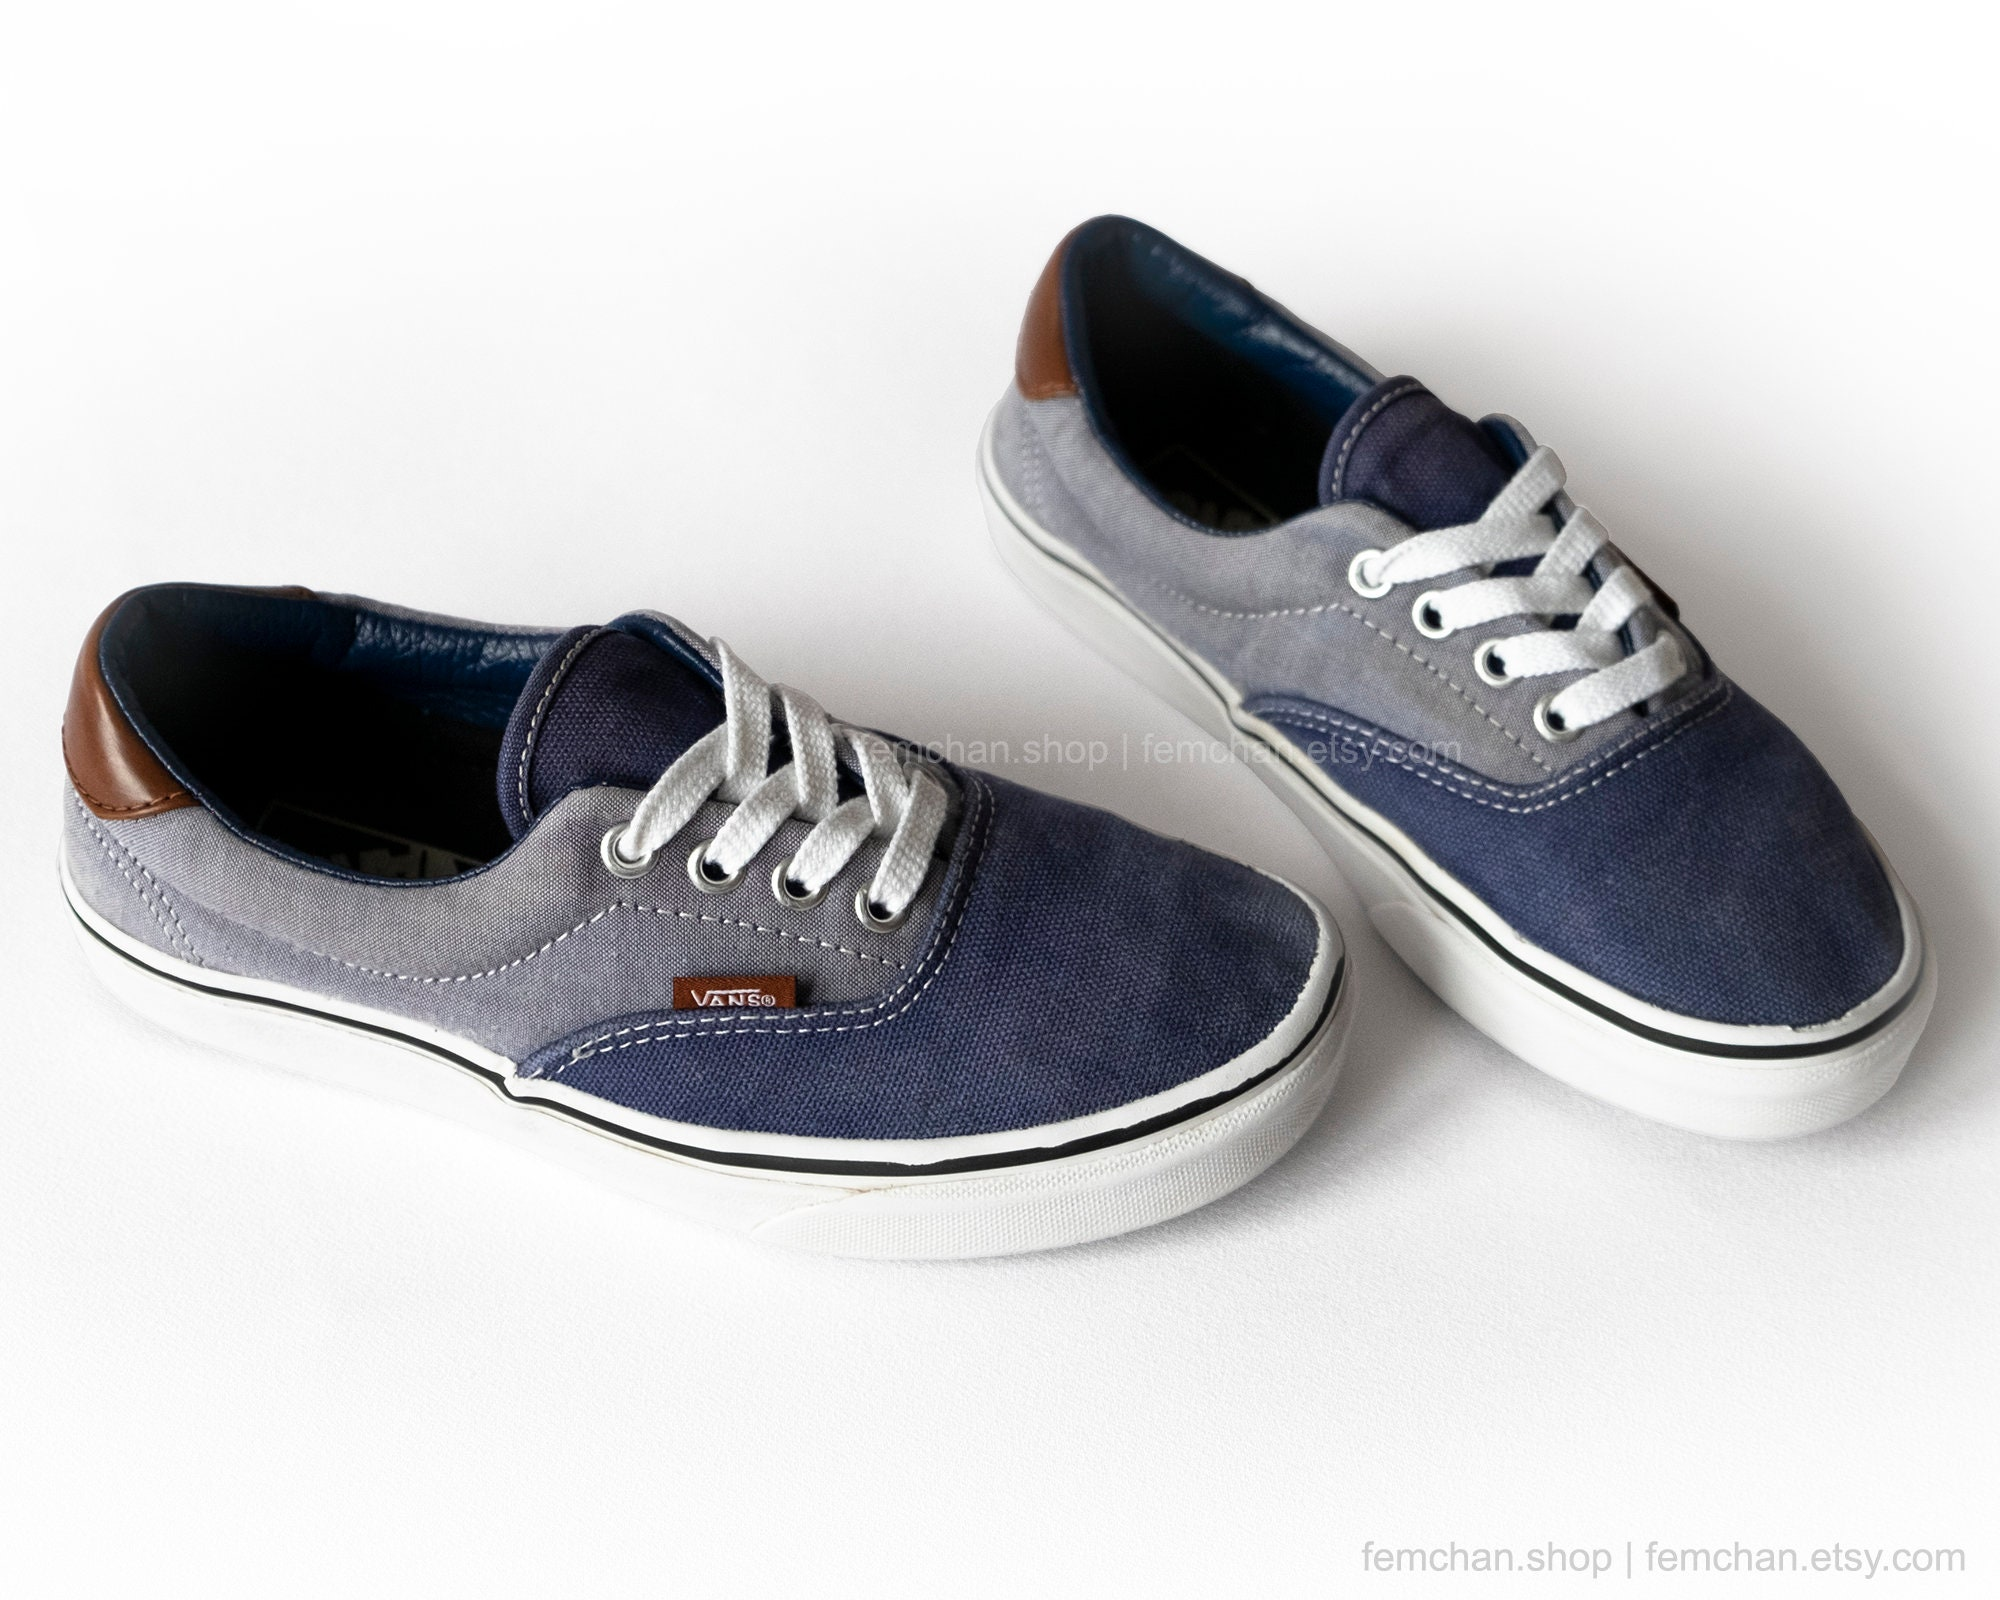 ad008c21b6 Vans Era skate shoes in navy blue chambray and leather